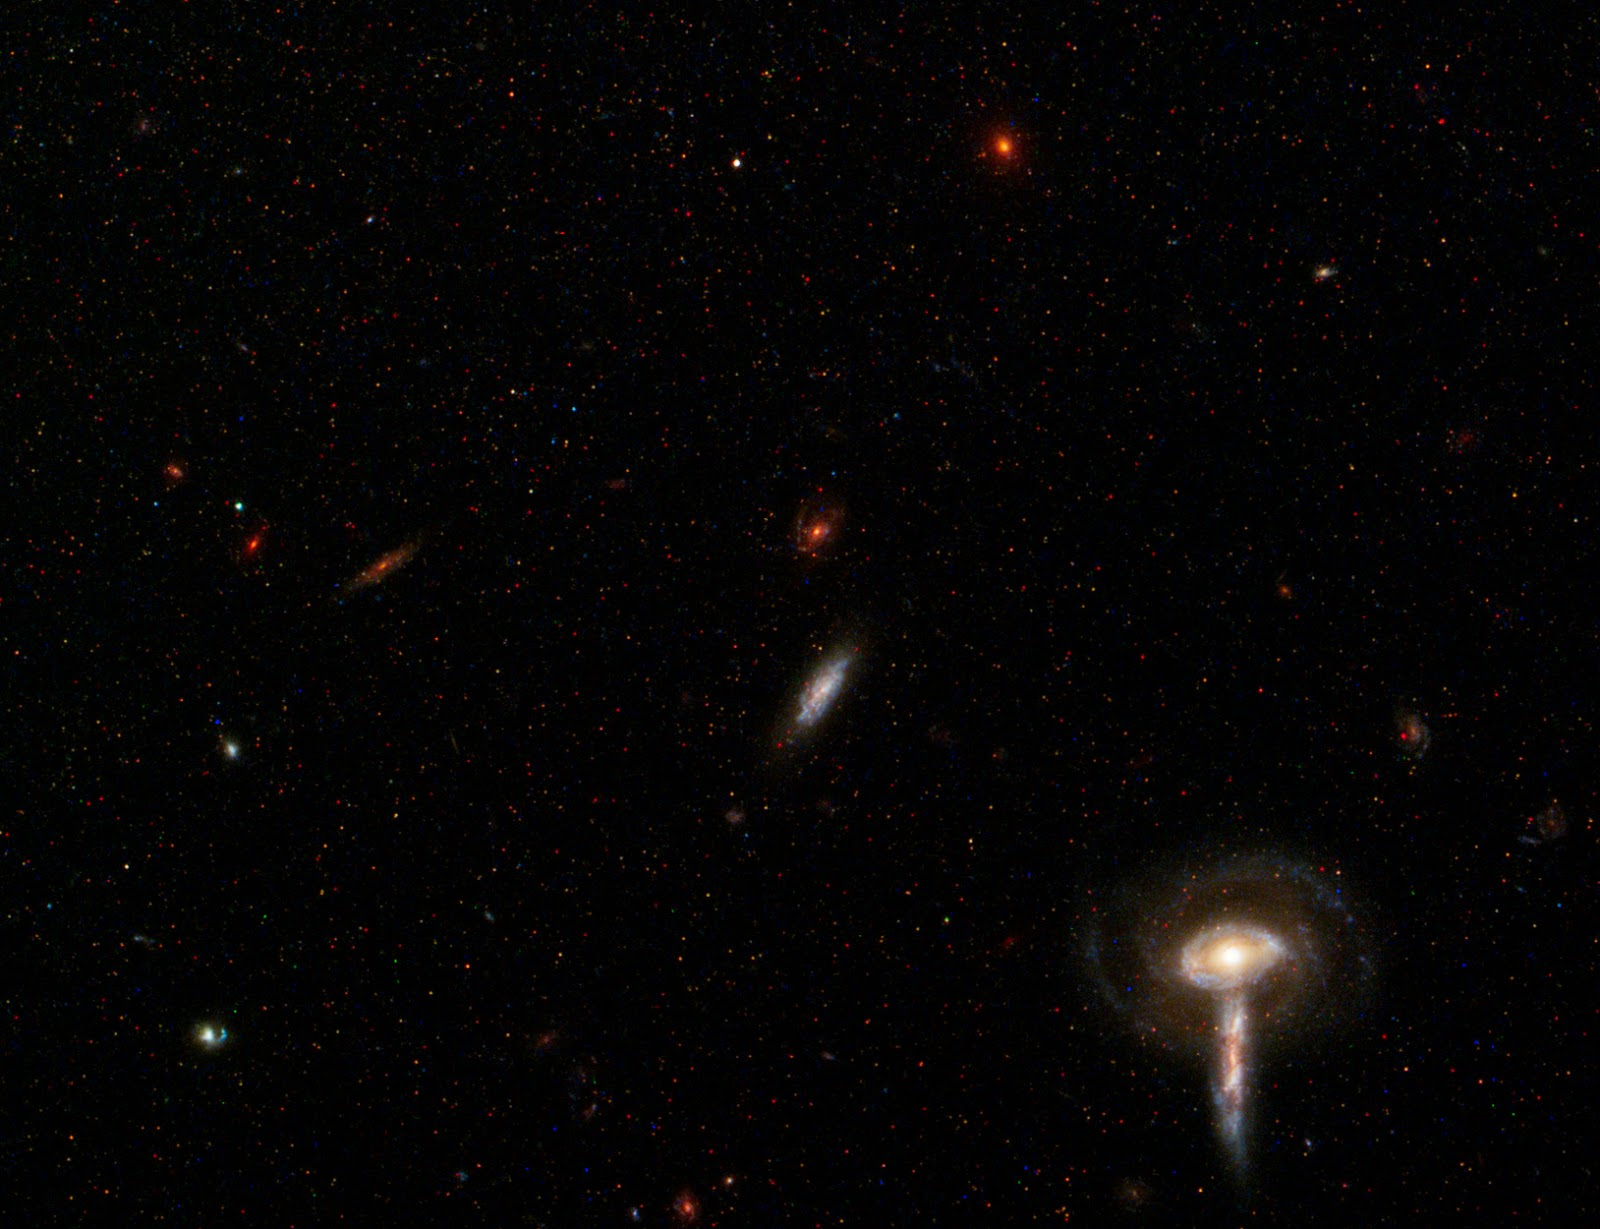 the history and background of galaxy Large disk galaxies like our own milky way were not always the well-ordered,   shown in red is the distant, background galaxy, being distorted by the   accumulate most of their gas during their first few billion years of history.